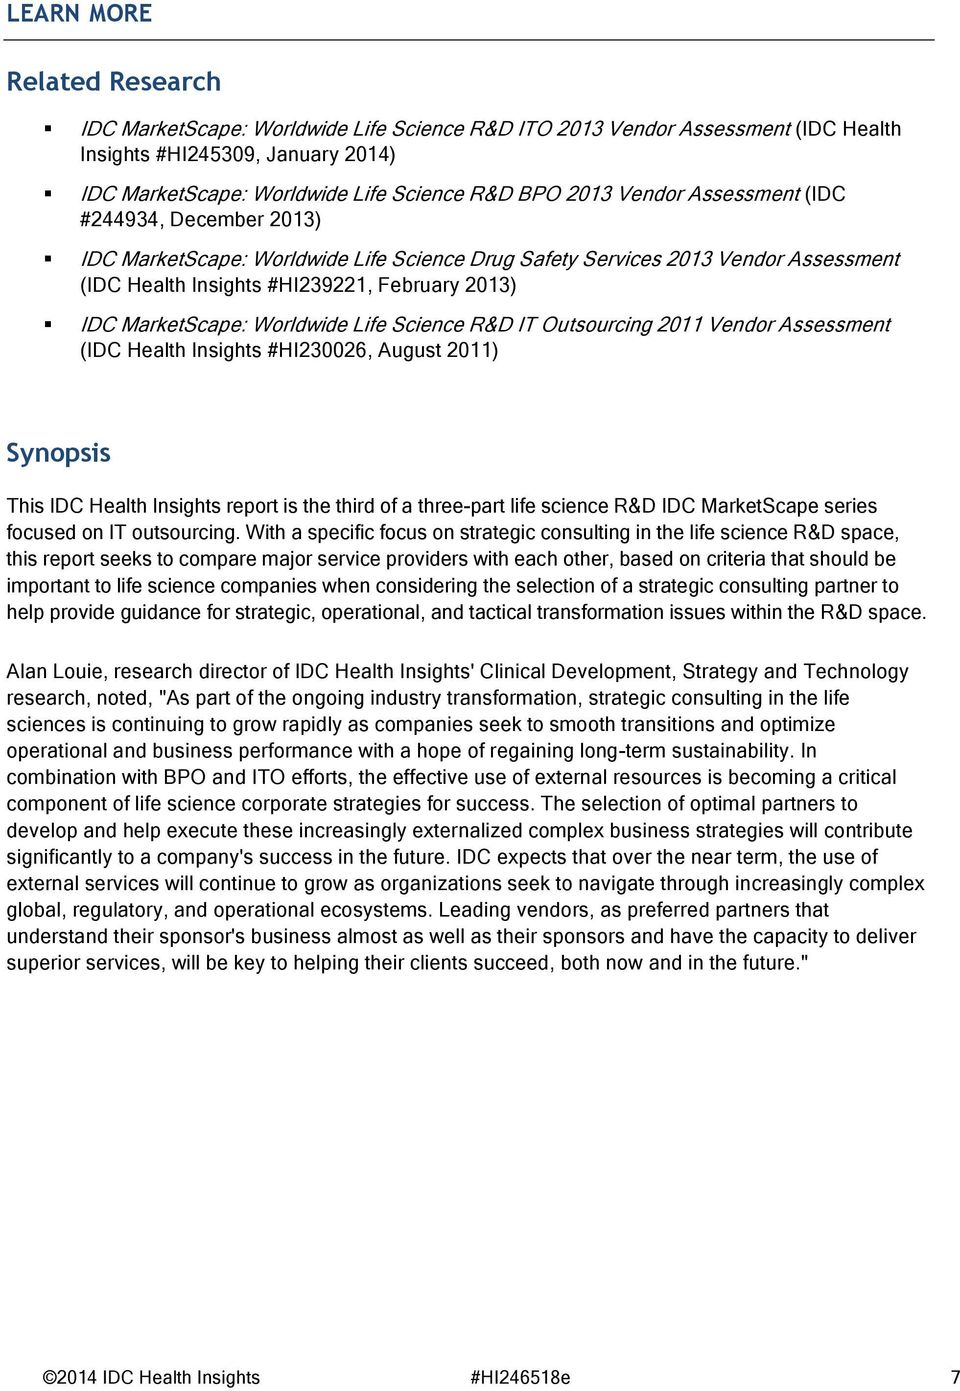 Worldwide Life Science R&D IT Outsourcing 2011 Vendor Assessment (IDC Health Insights #HI230026, August 2011) Synopsis This IDC Health Insights report is the third of a three-part life science R&D